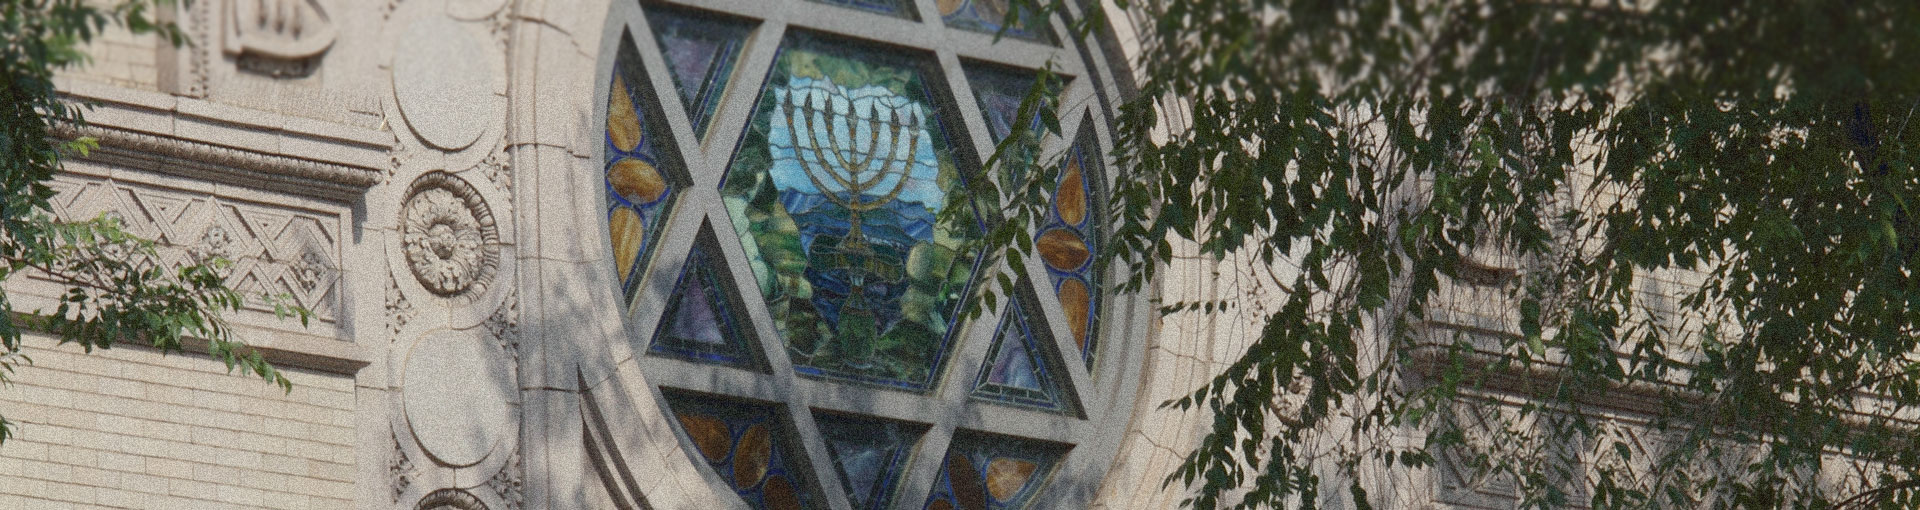 Exterior of Jewish Synagogue with Star of David in Stained Glass Window